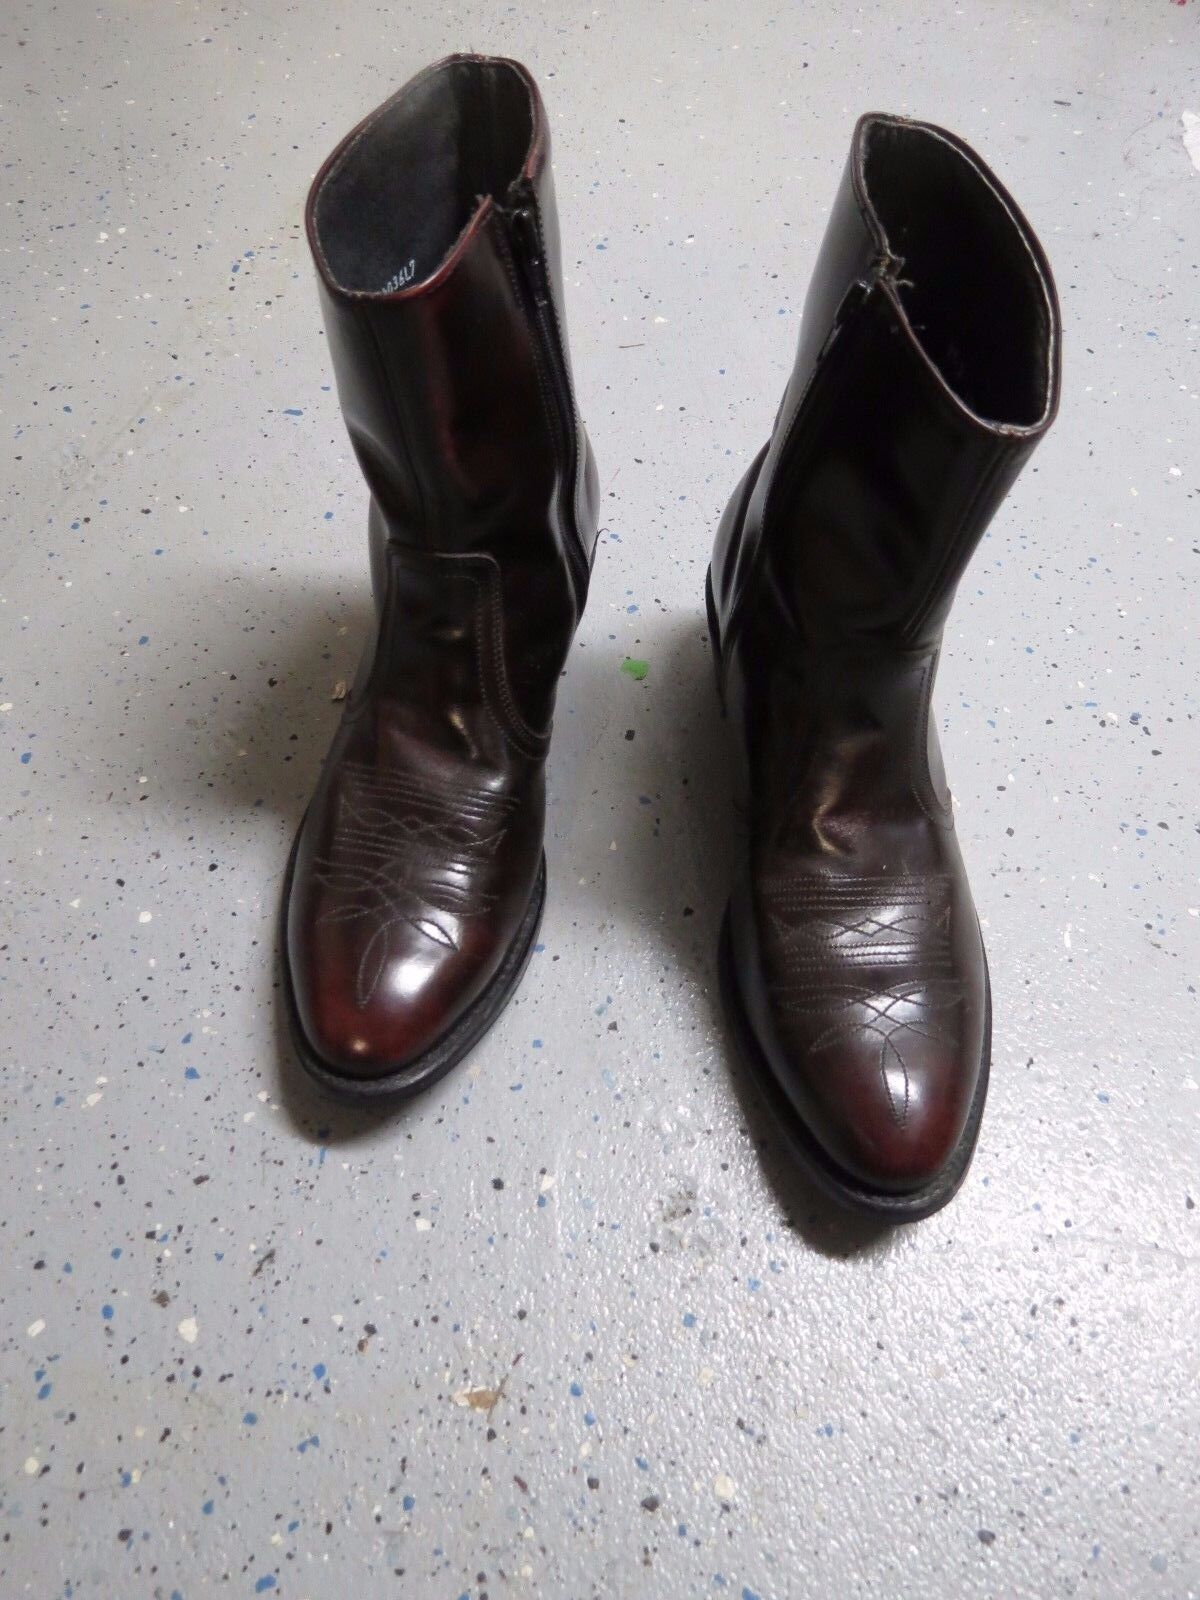 Vintage Mason Western Leather Cowboy Maroon Boots size 9.5D